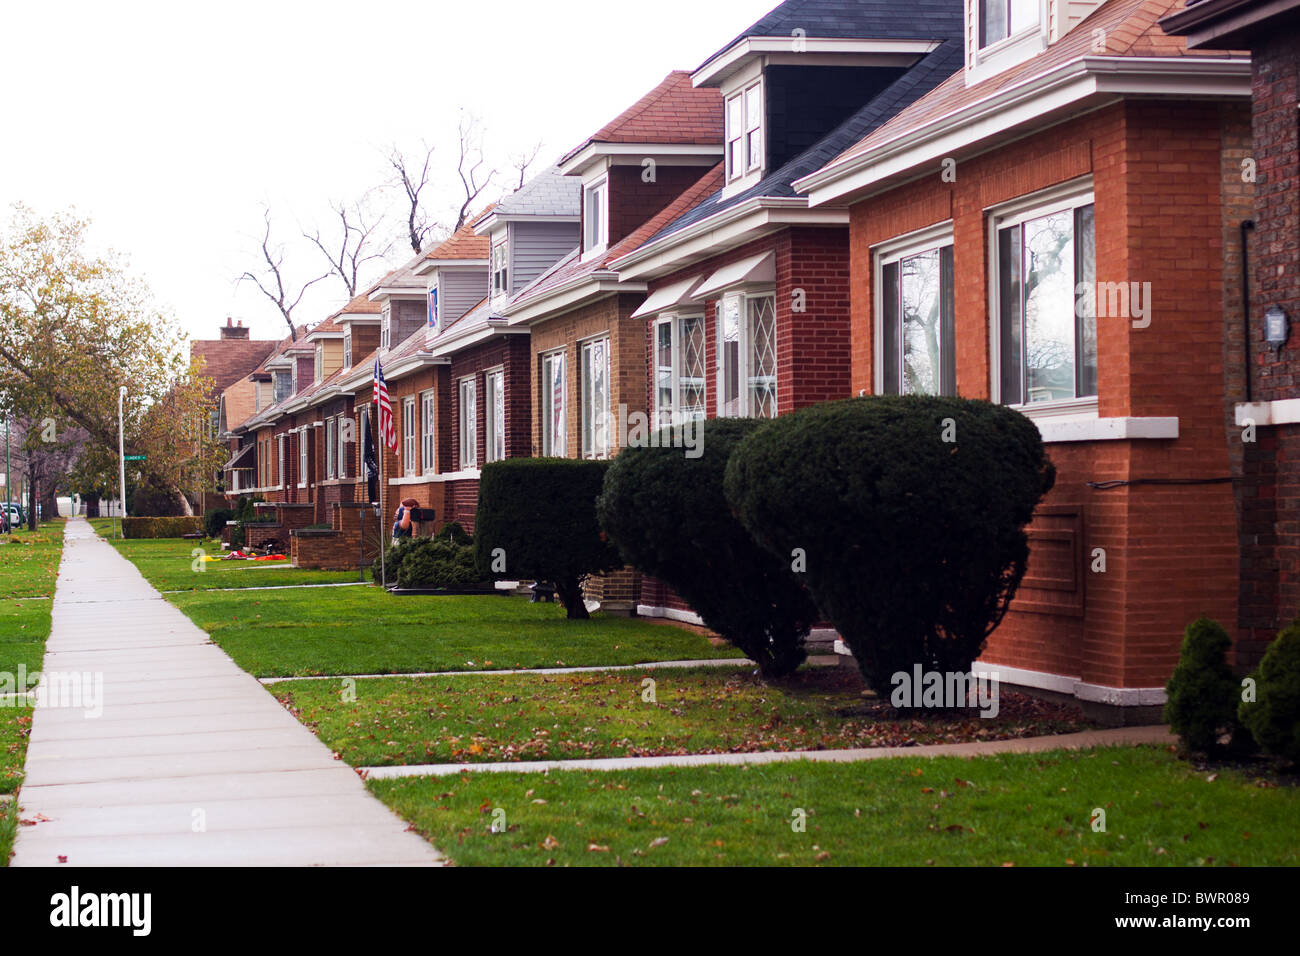 A row of bungalow type homes typical of the south side of chicago il